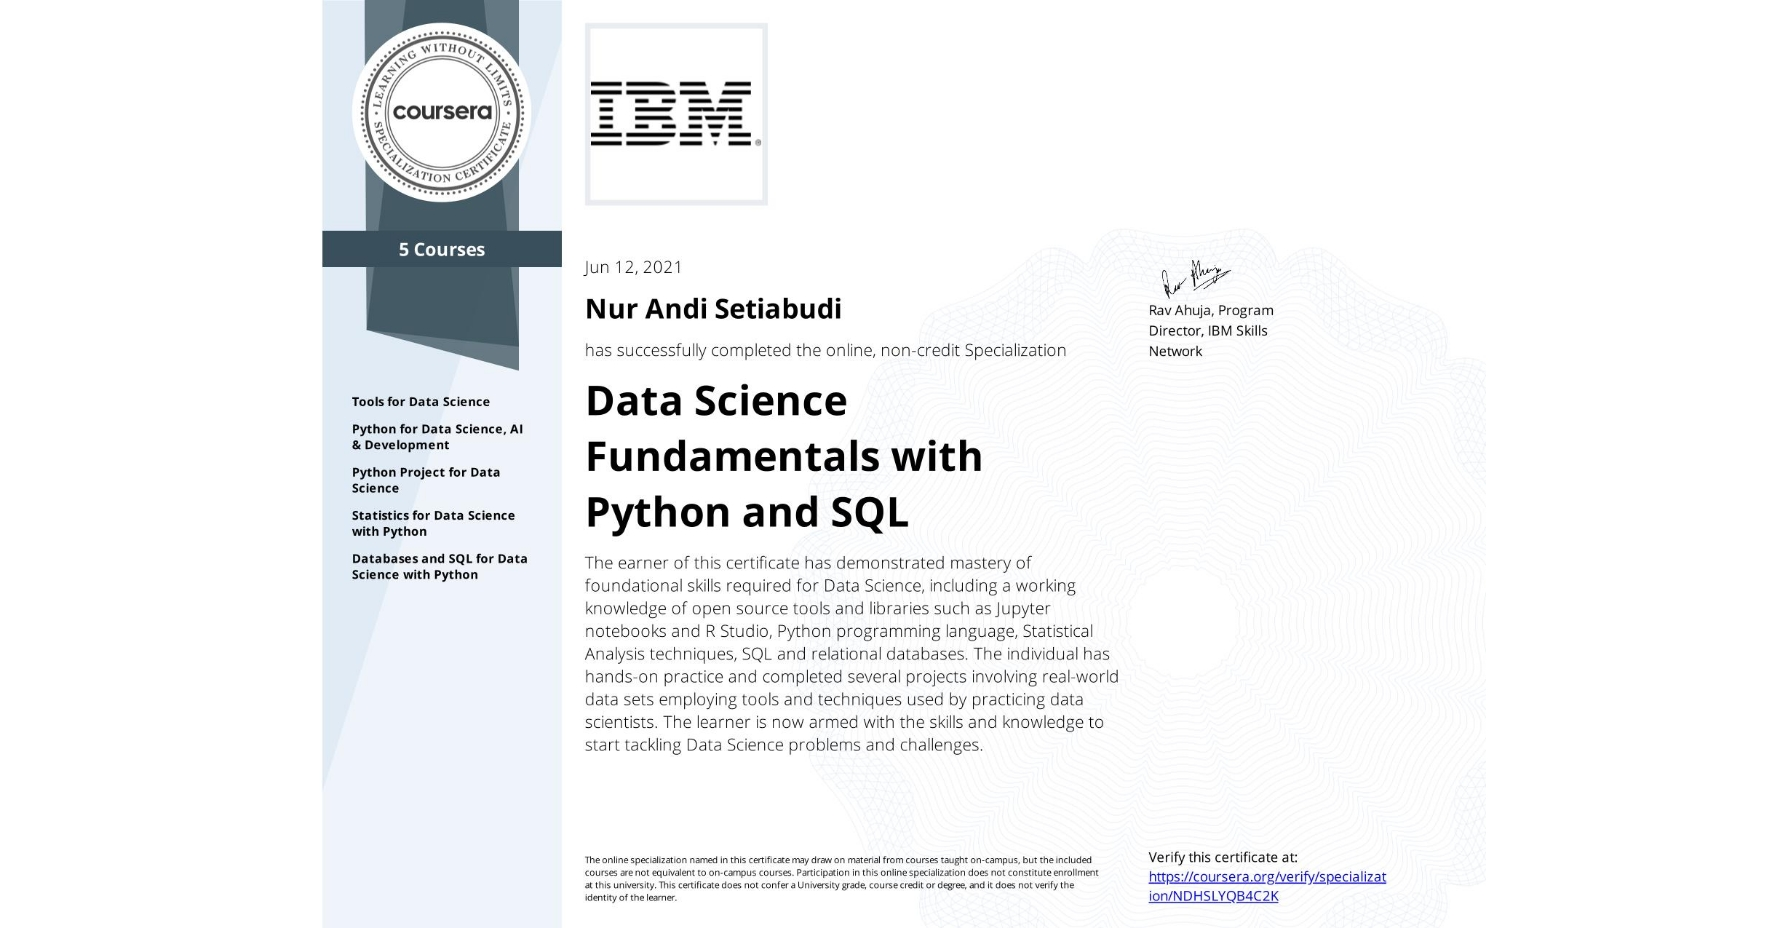 View certificate for Nur Andi  Setiabudi, Data Science Fundamentals with Python and SQL, offered through Coursera. The earner of this certificate has demonstrated mastery of foundational skills required for Data Science, including a working knowledge of open source tools and libraries such as Jupyter notebooks and R Studio, Python programming language, Statistical Analysis techniques, SQL and relational databases. The individual has hands-on practice and completed several projects involving real-world data sets employing tools and techniques used by practicing data scientists. The learner is now armed with the skills and knowledge to start tackling Data Science problems and challenges.